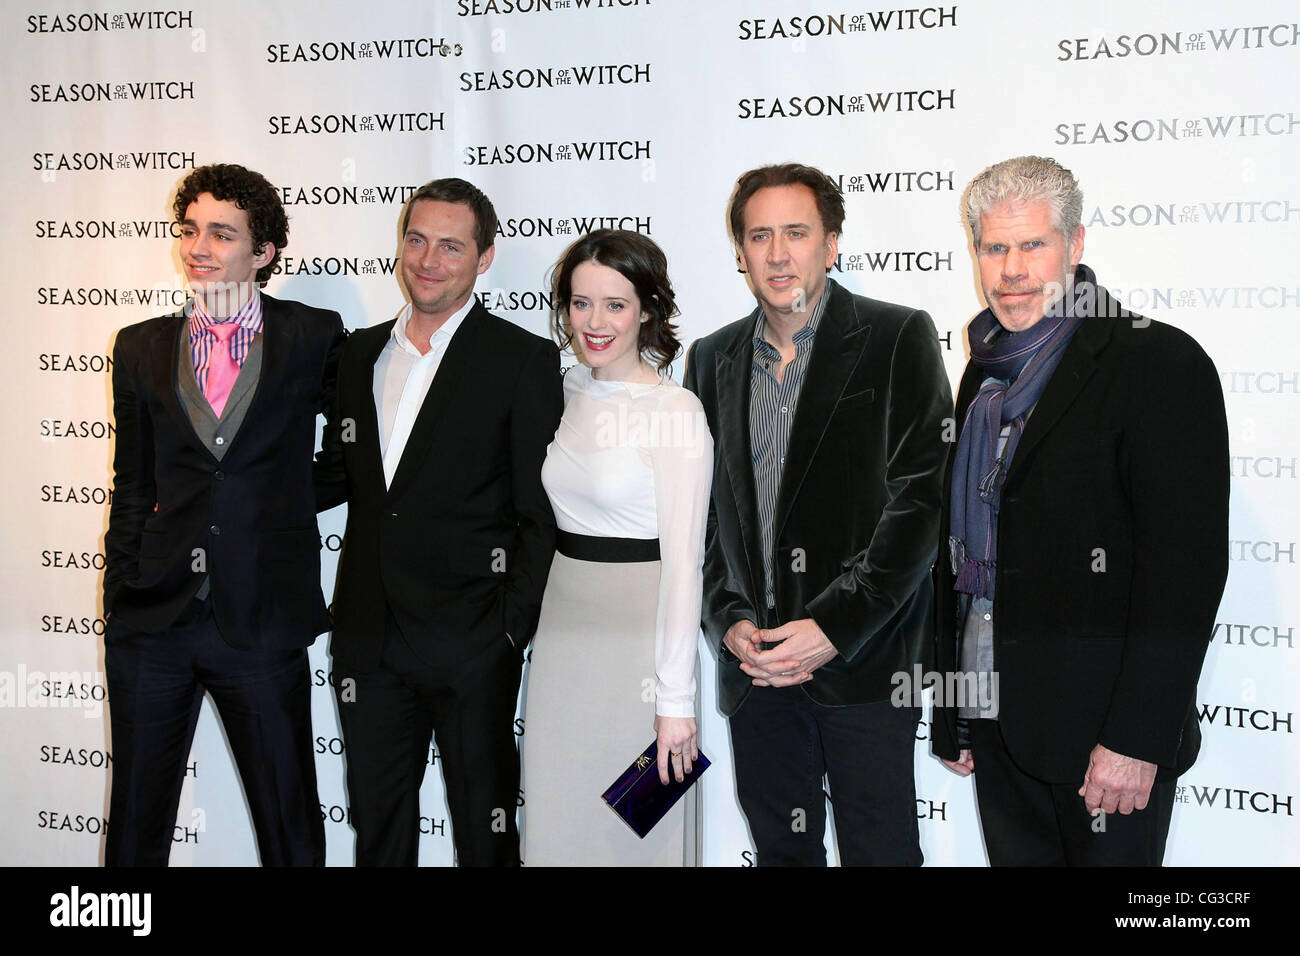 Robert Sheehan, Stephen Campbell Moore, Claire Foy, Nicolas Cage and Ron Perlman,  at the 'Season of the Witch' - Stock Image